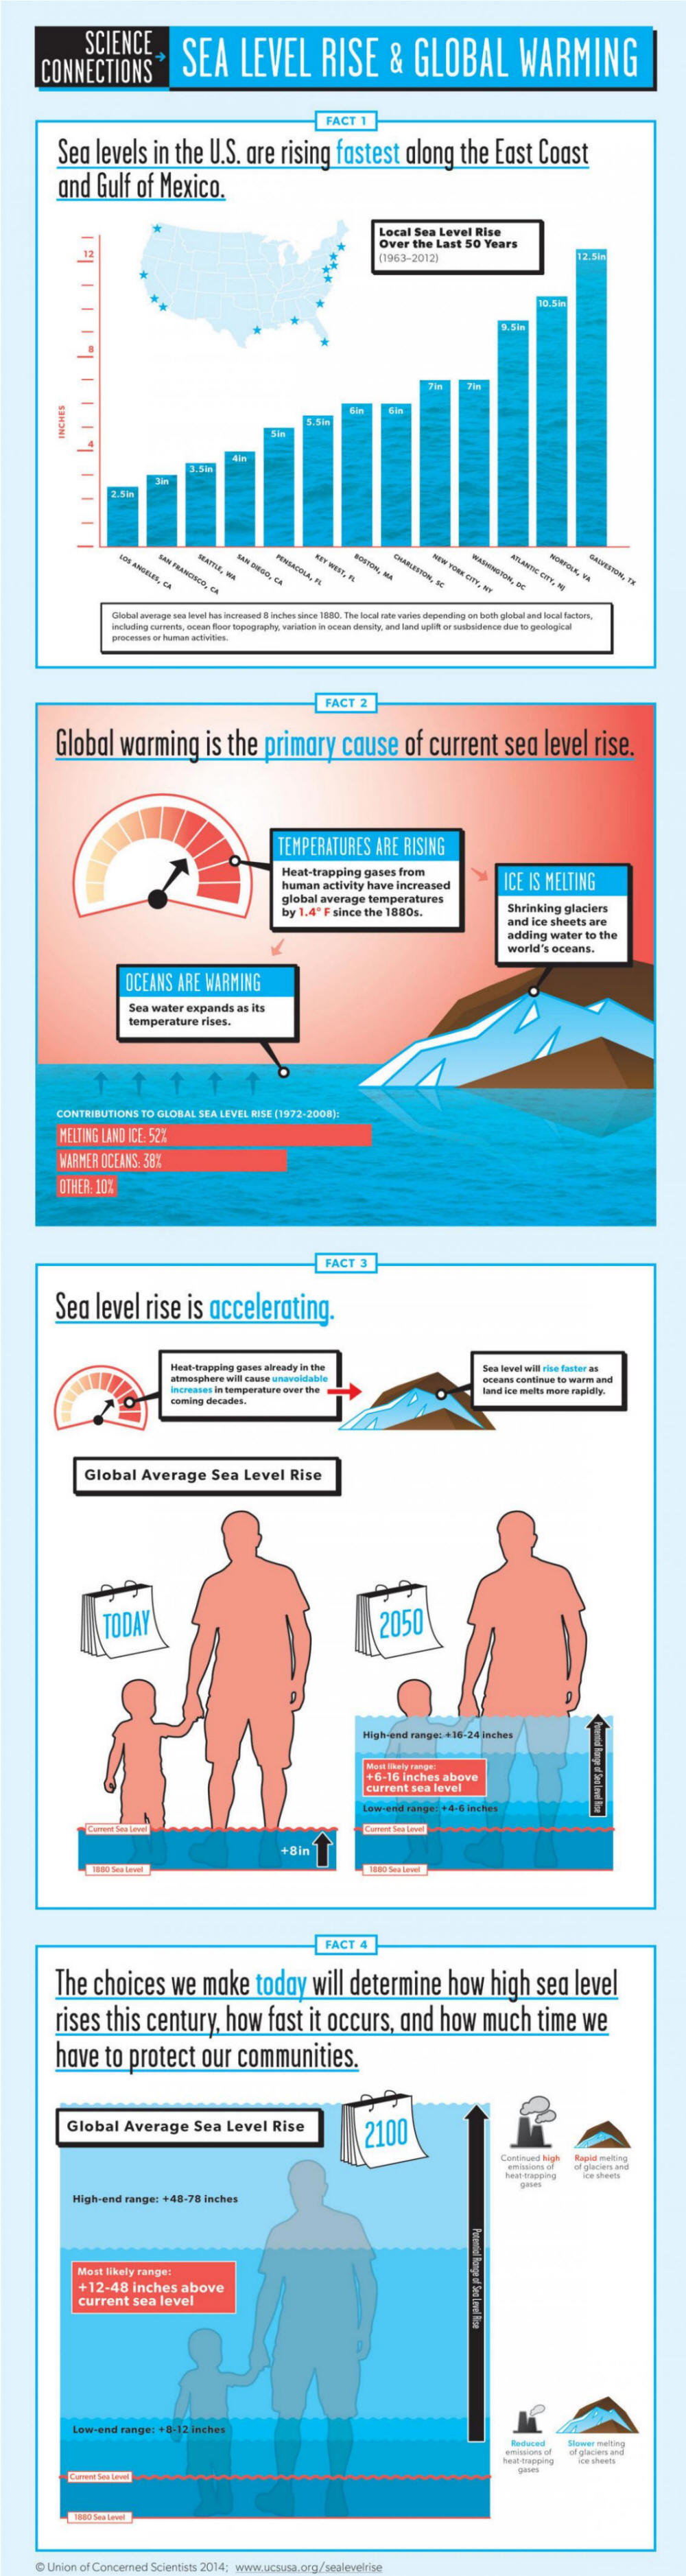 Sea Level Rise and Global Warming